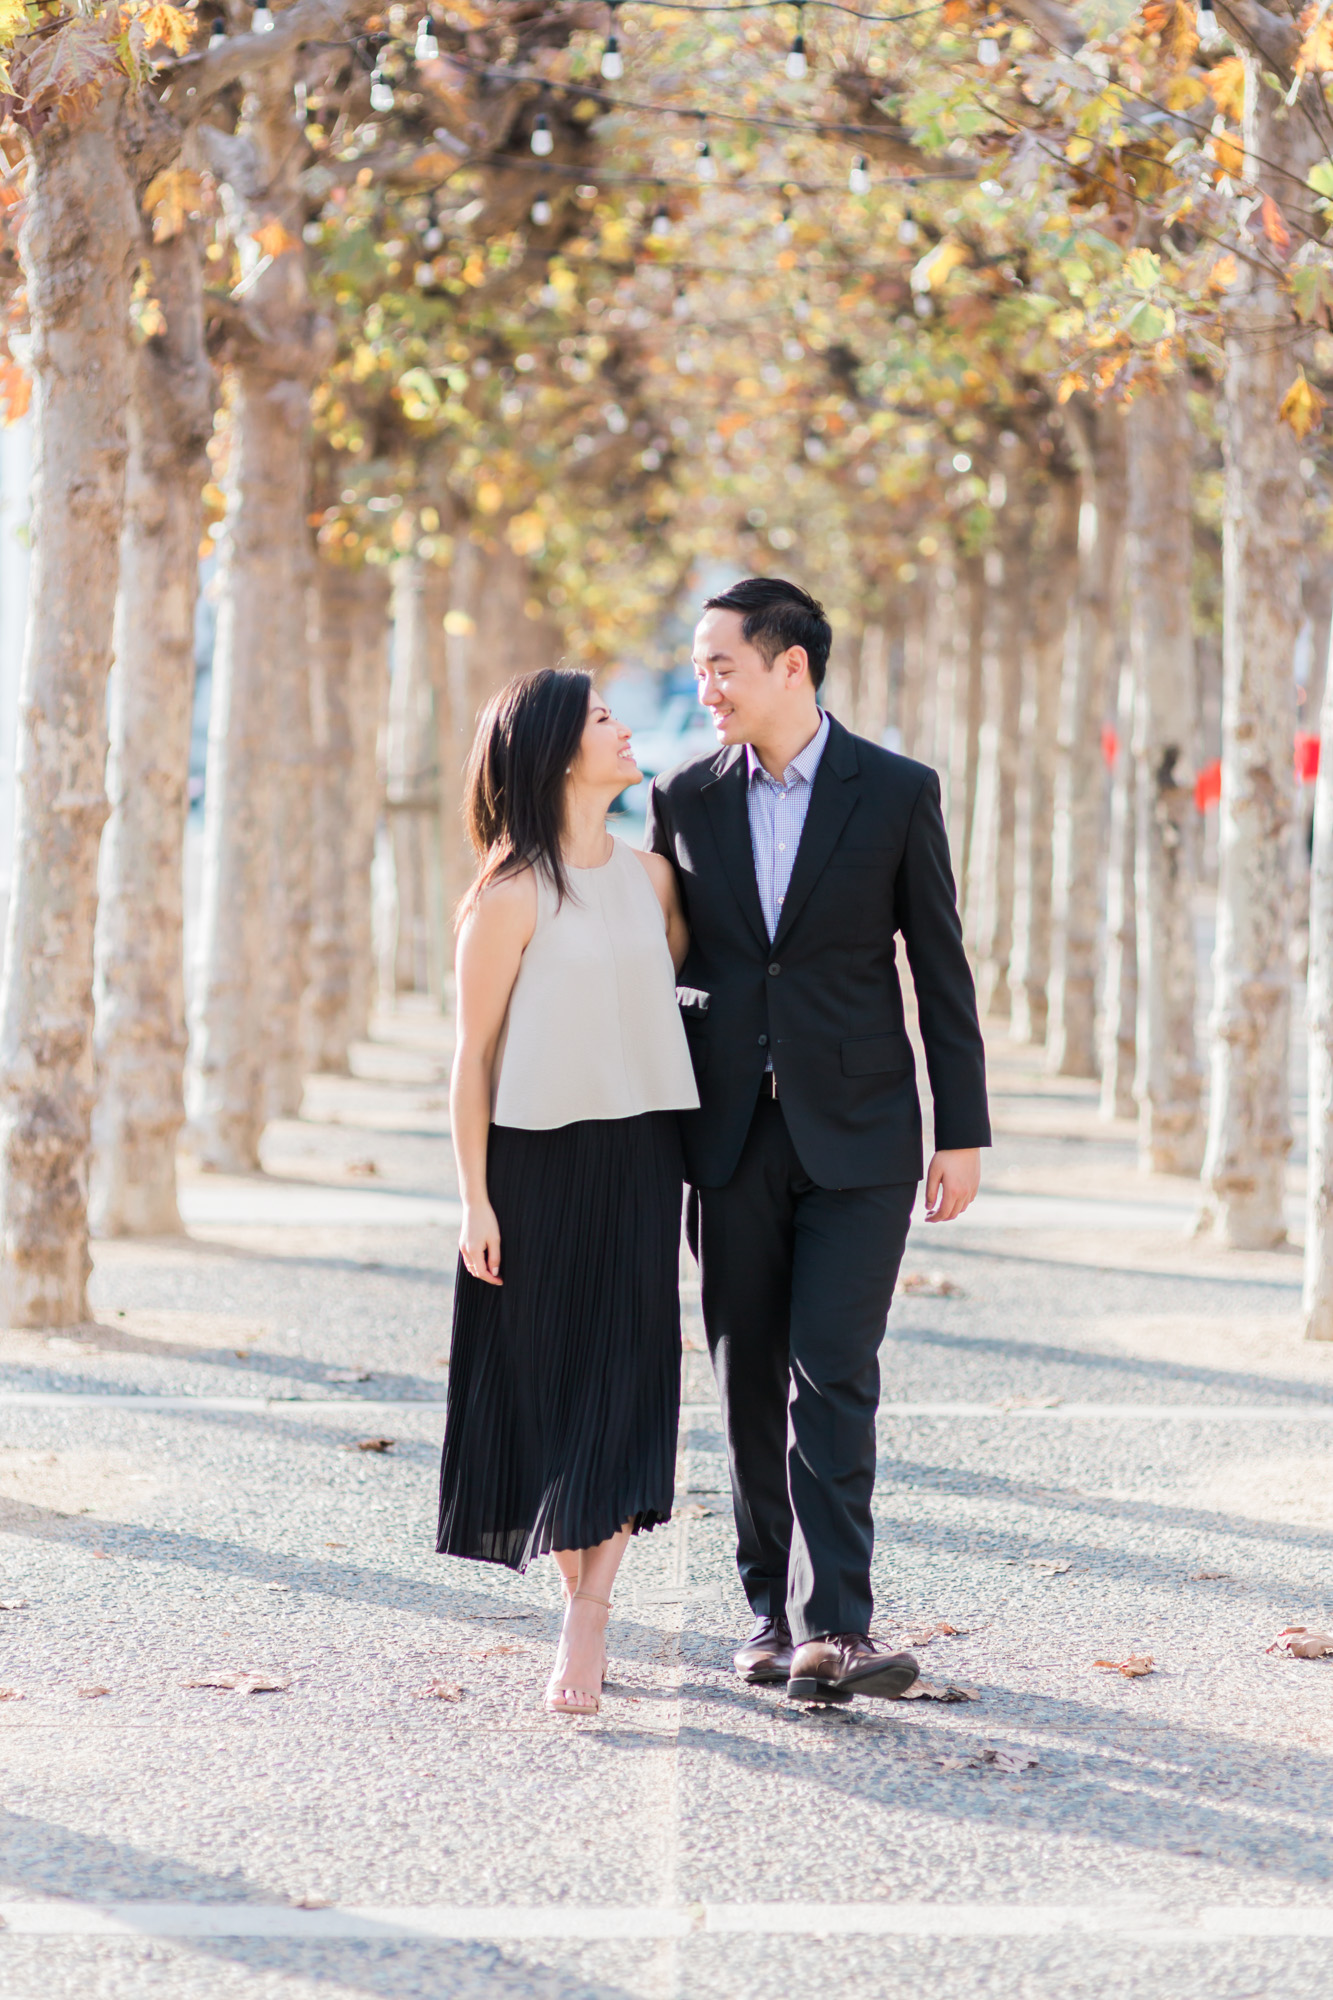 joeewong-jaal-california-san-francisco-engagement-18